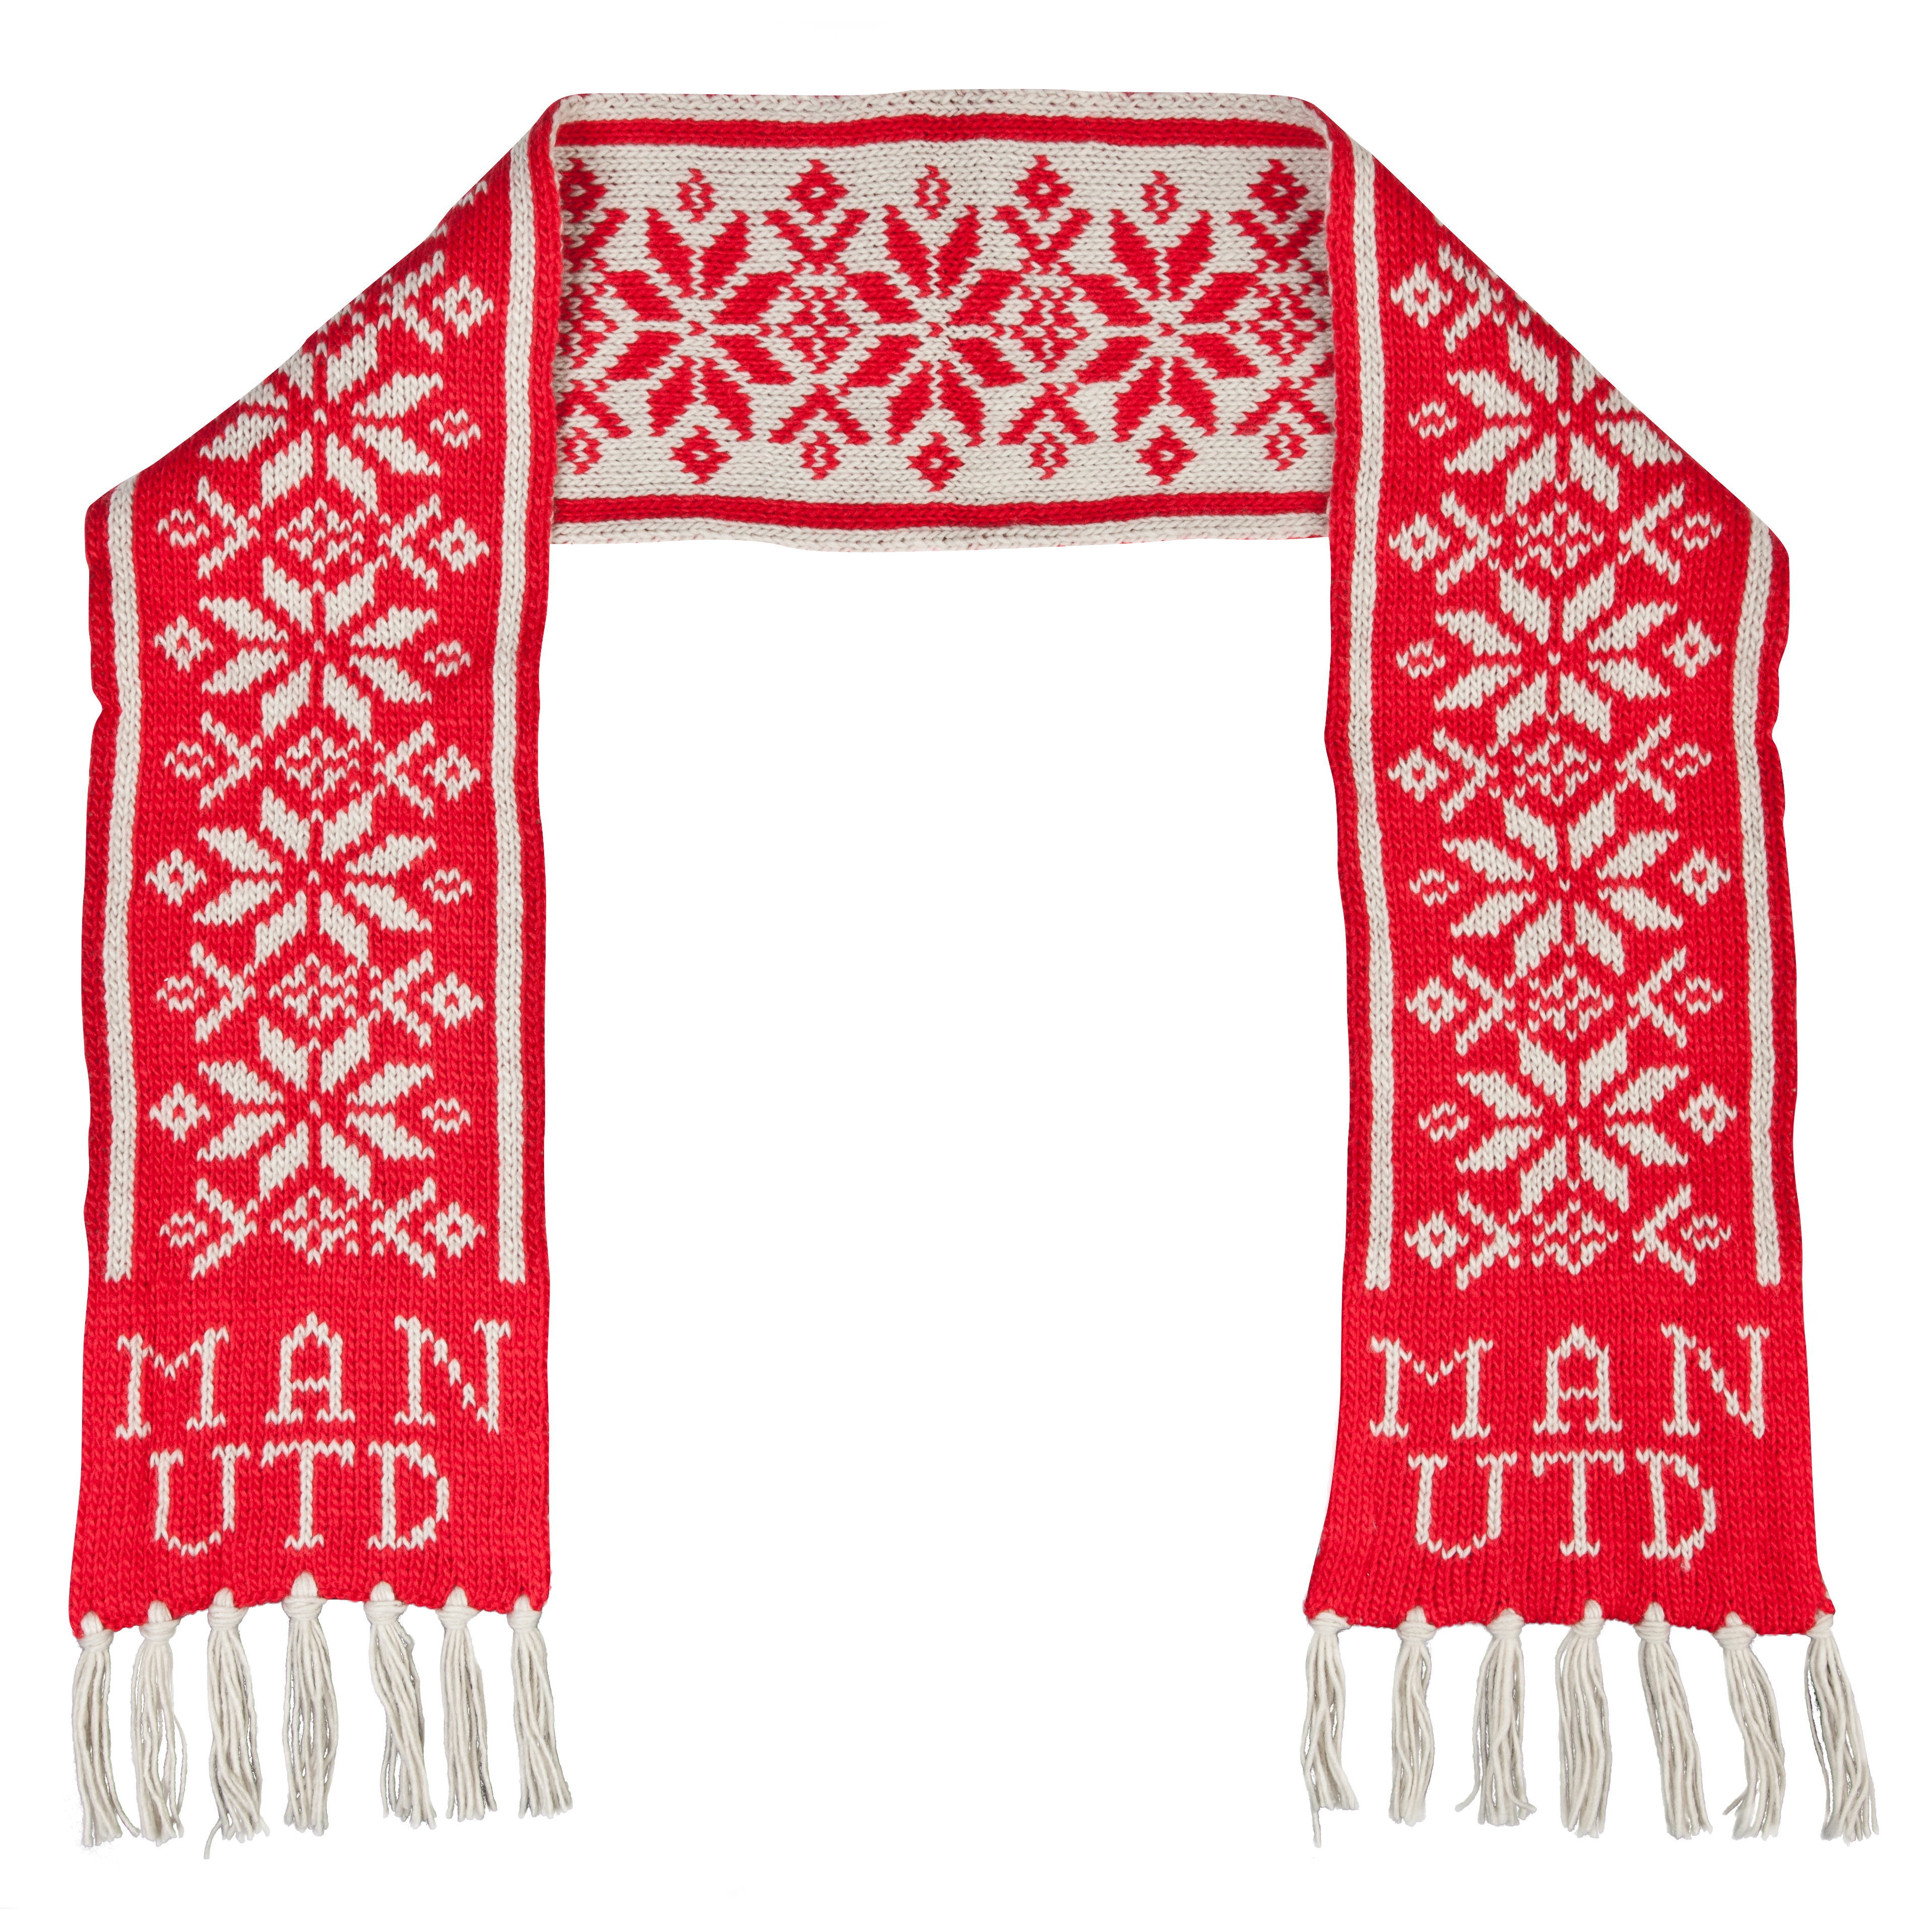 Manchester United Fairisle Scarf - Adult Red